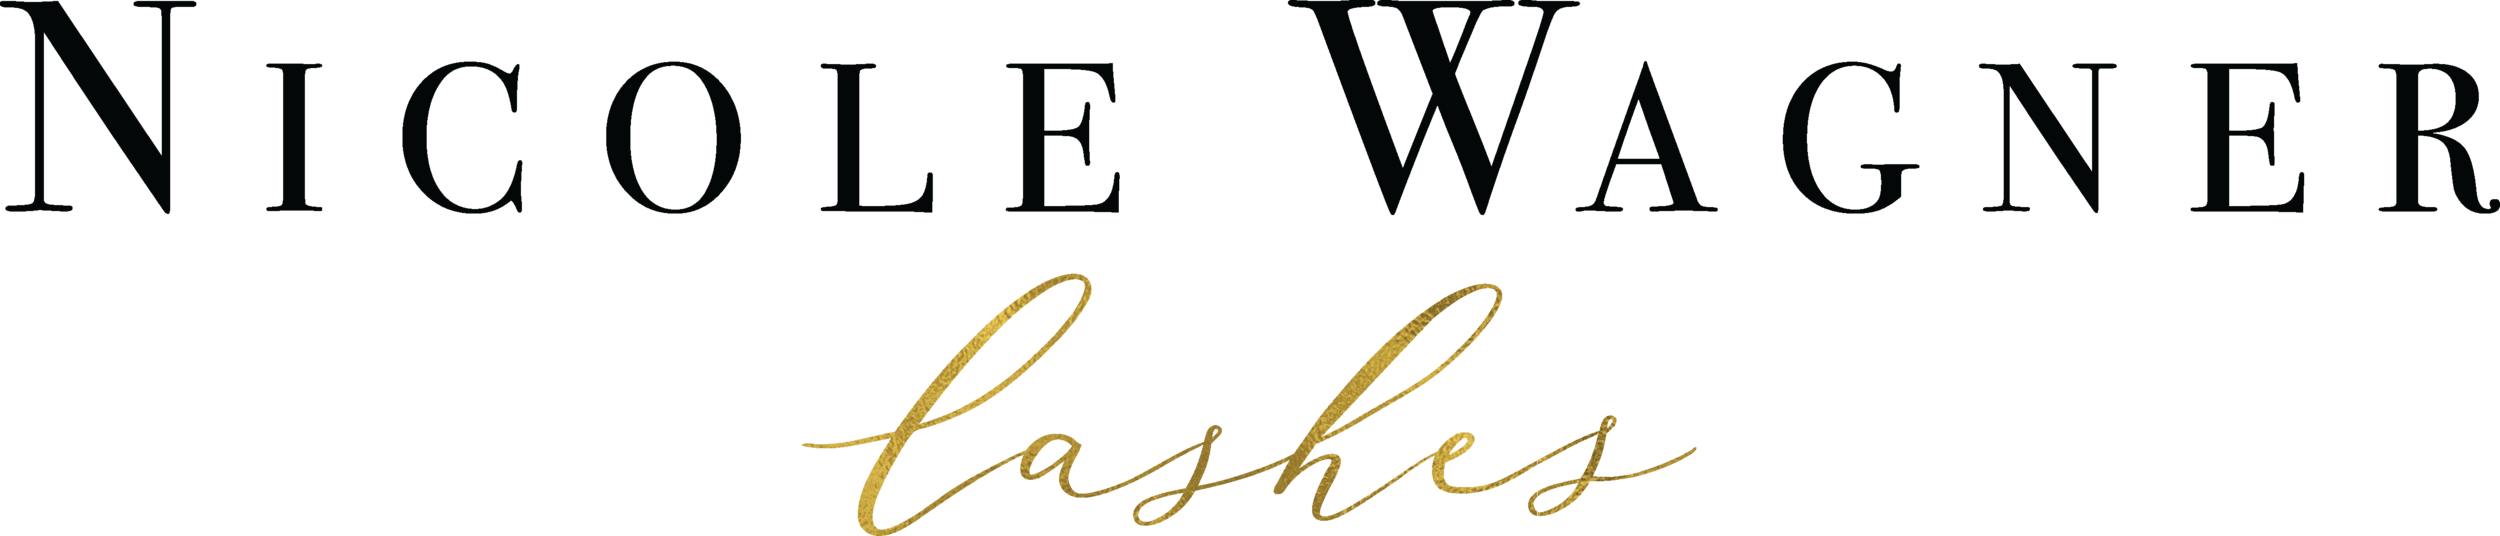 nicole-wagner-lashes-gold-foil.png